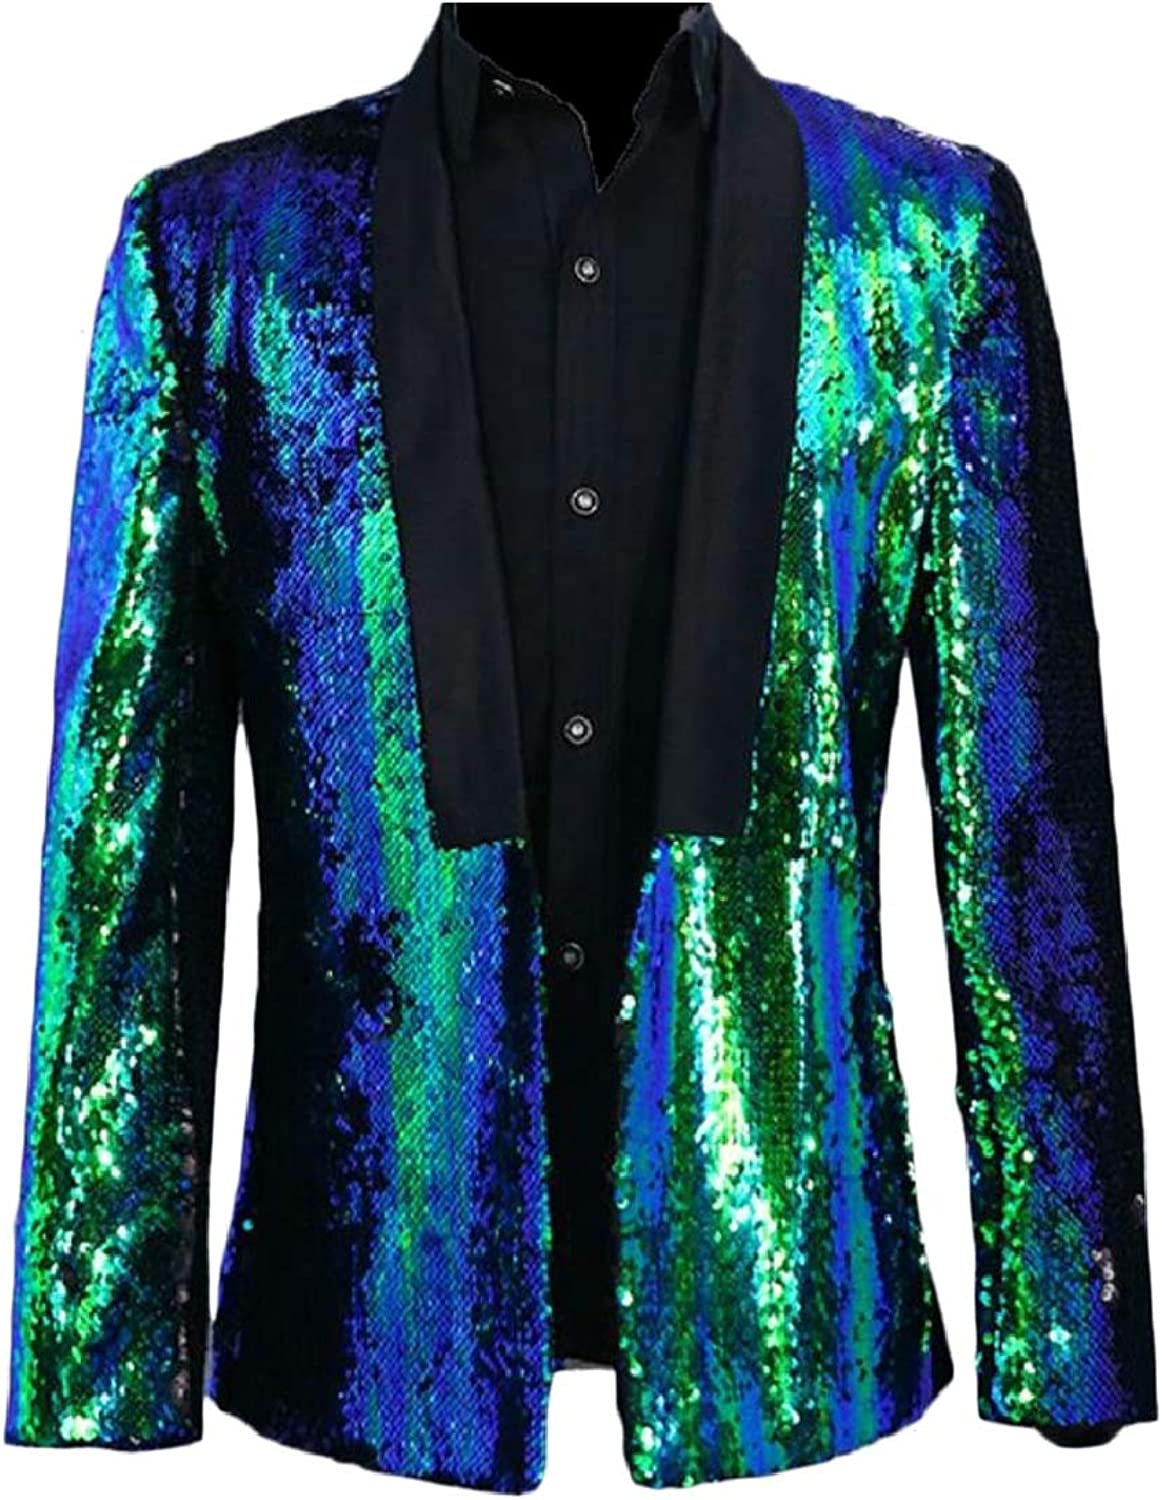 Smeiling-CA Mens Long Sleeve Sequin Print Pattern Glitter Suit Blazer Jackets